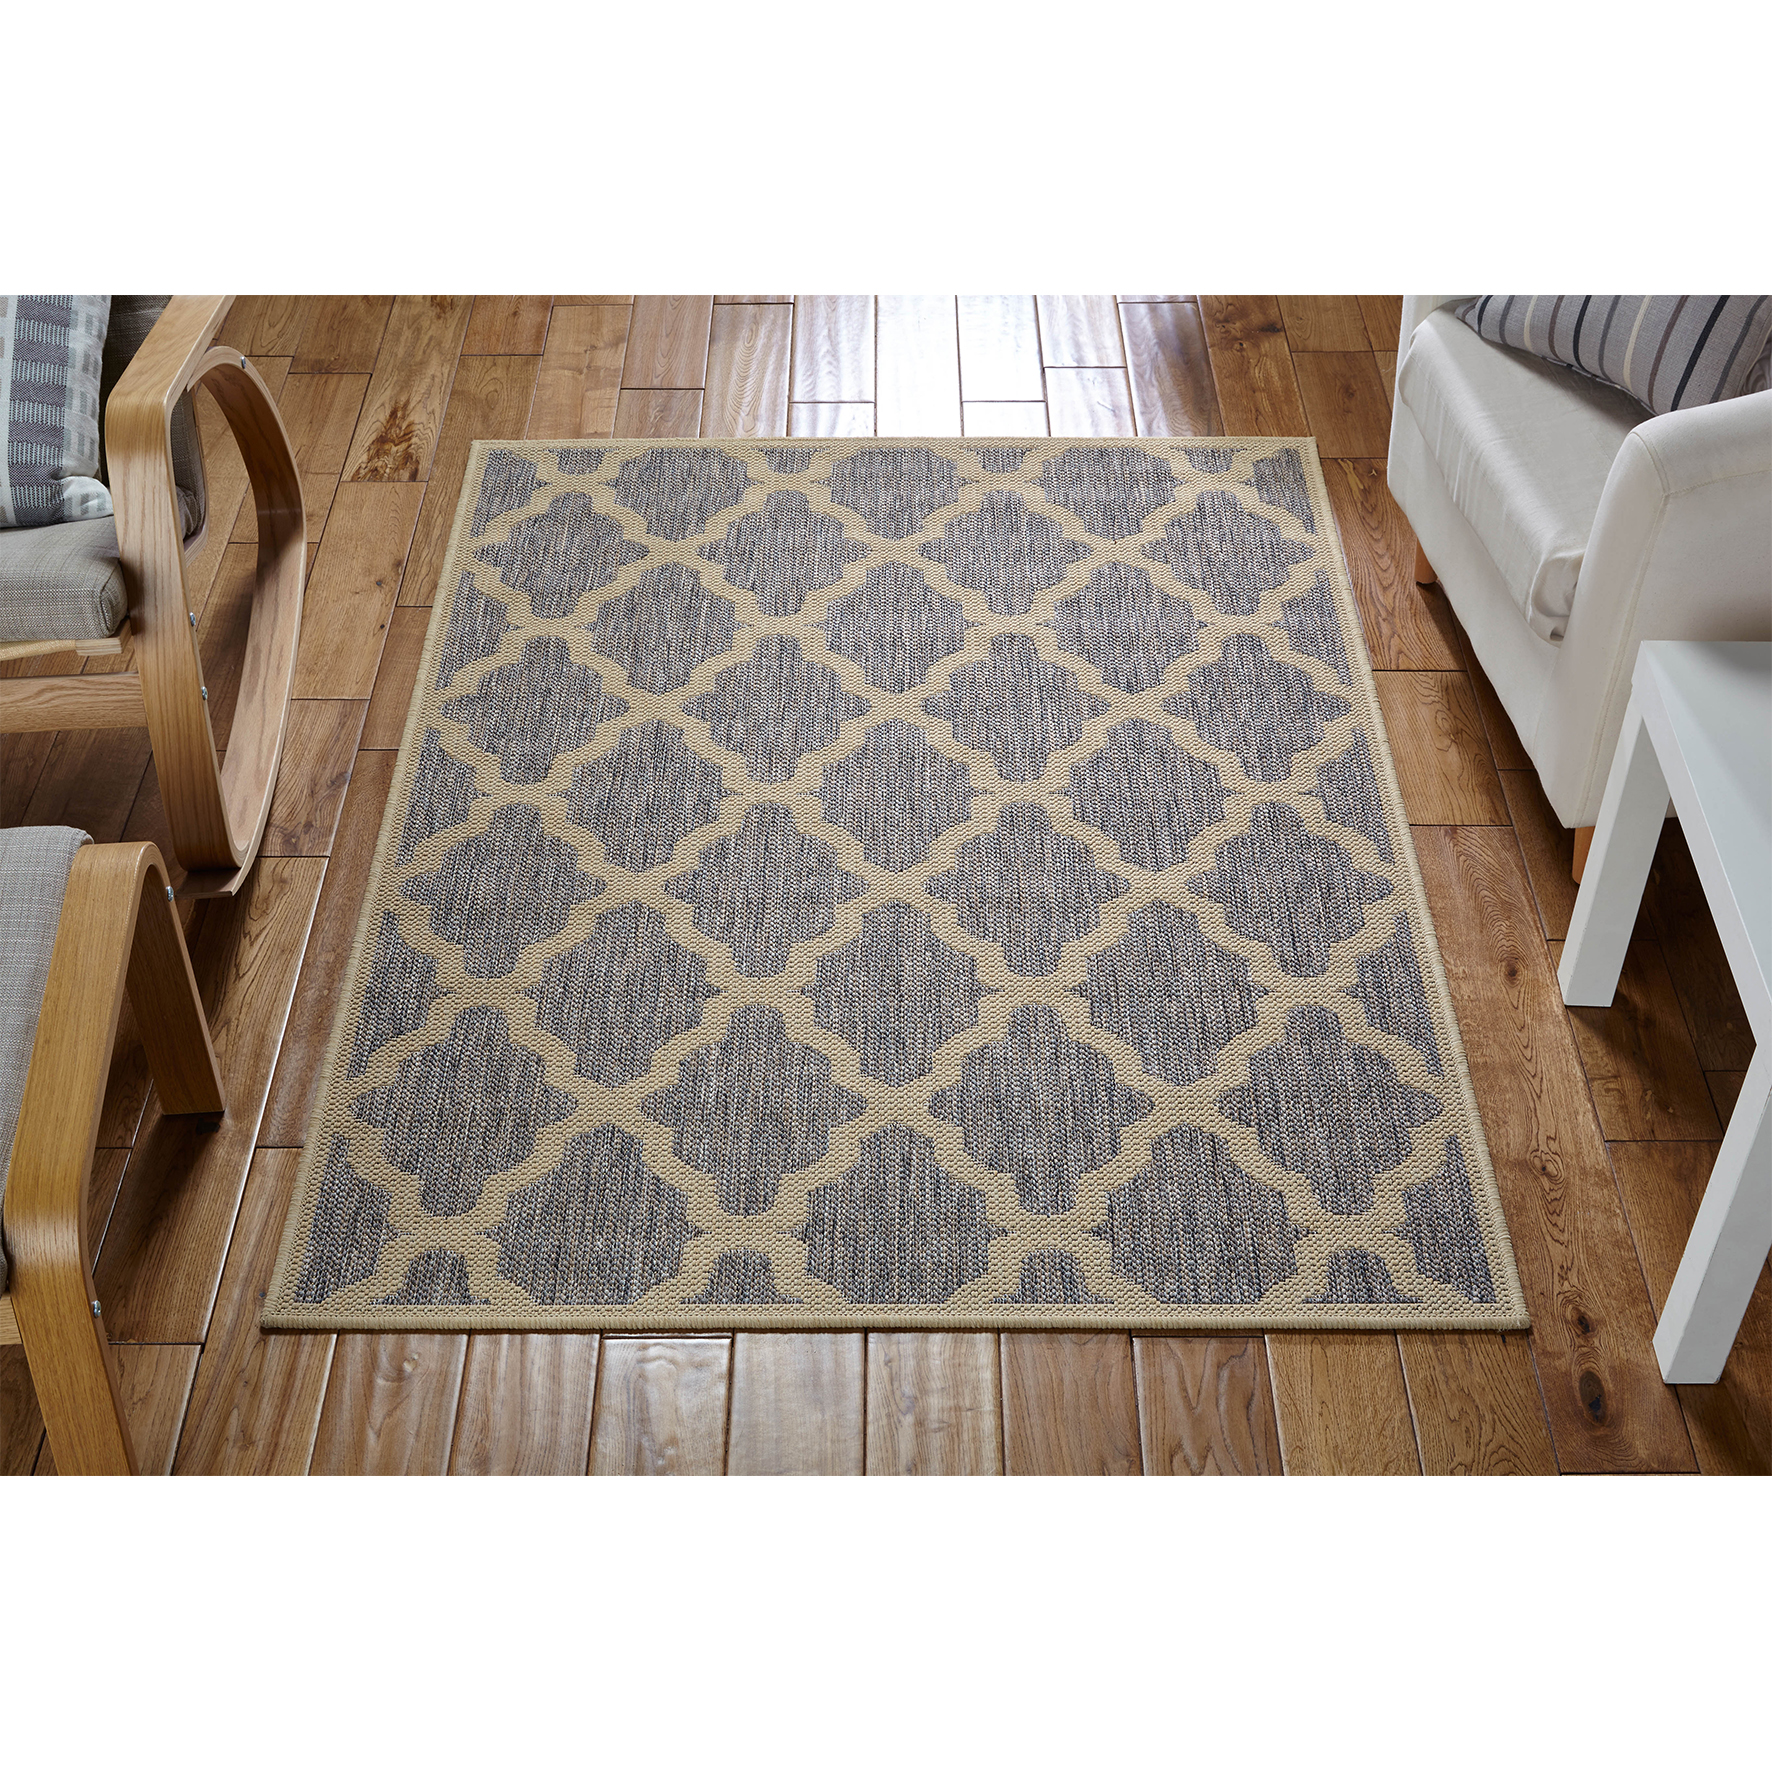 Black And White Rug Ebay Uk: Moda Flatweave Trellis Grey Rugs